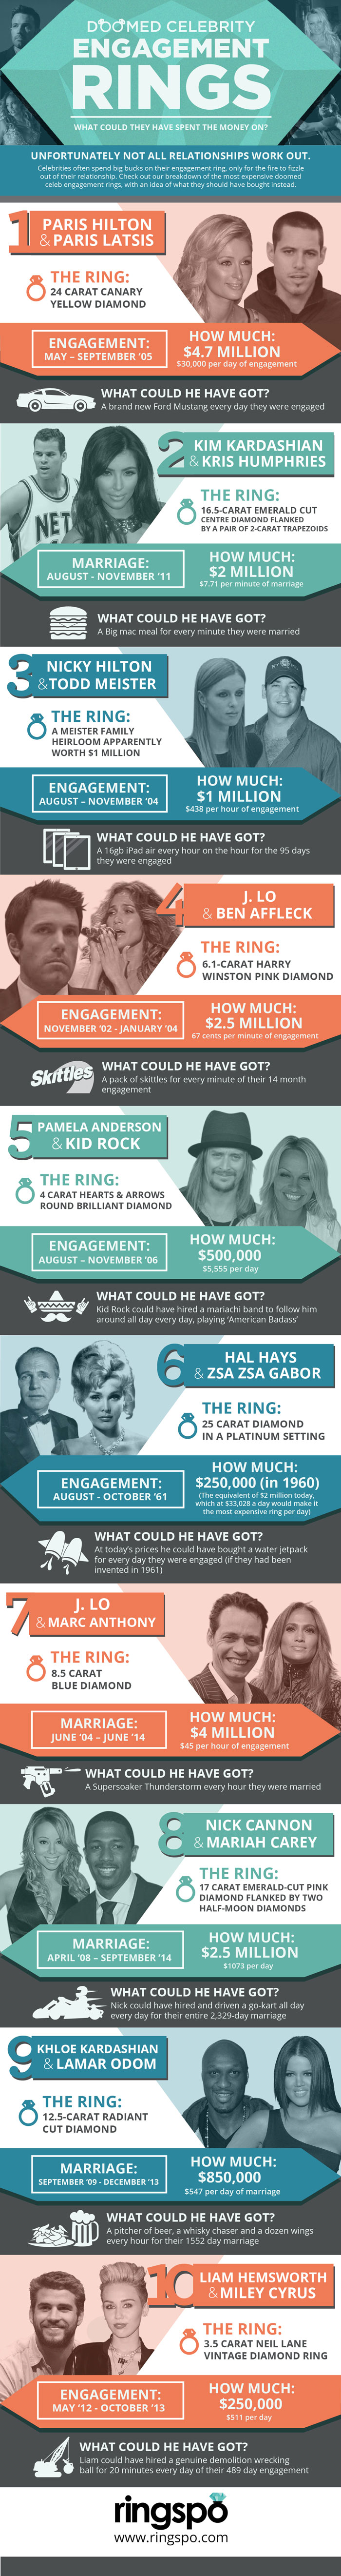 Doomed Celebrity Engagement Rings final 01